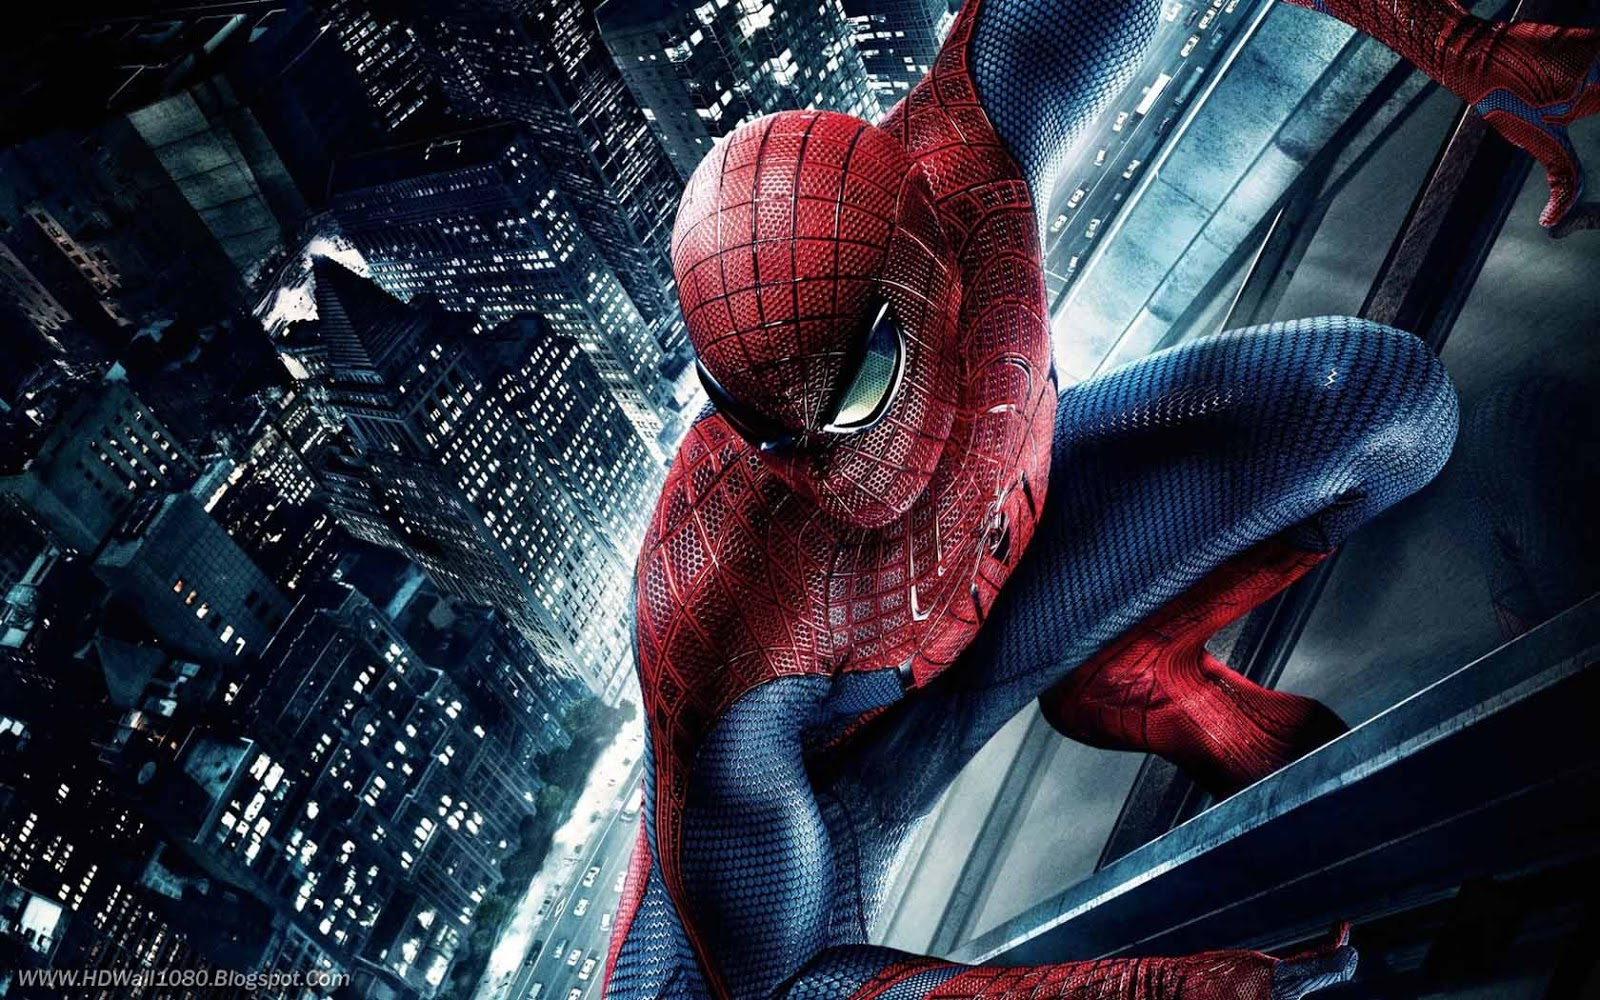 http://1.bp.blogspot.com/-pn4ZH9nbMJ8/UL5JcYQE8CI/AAAAAAAABNc/flAYBYf9pFo/s1600/Spider+Man+In+City++Wallpapers.jpg